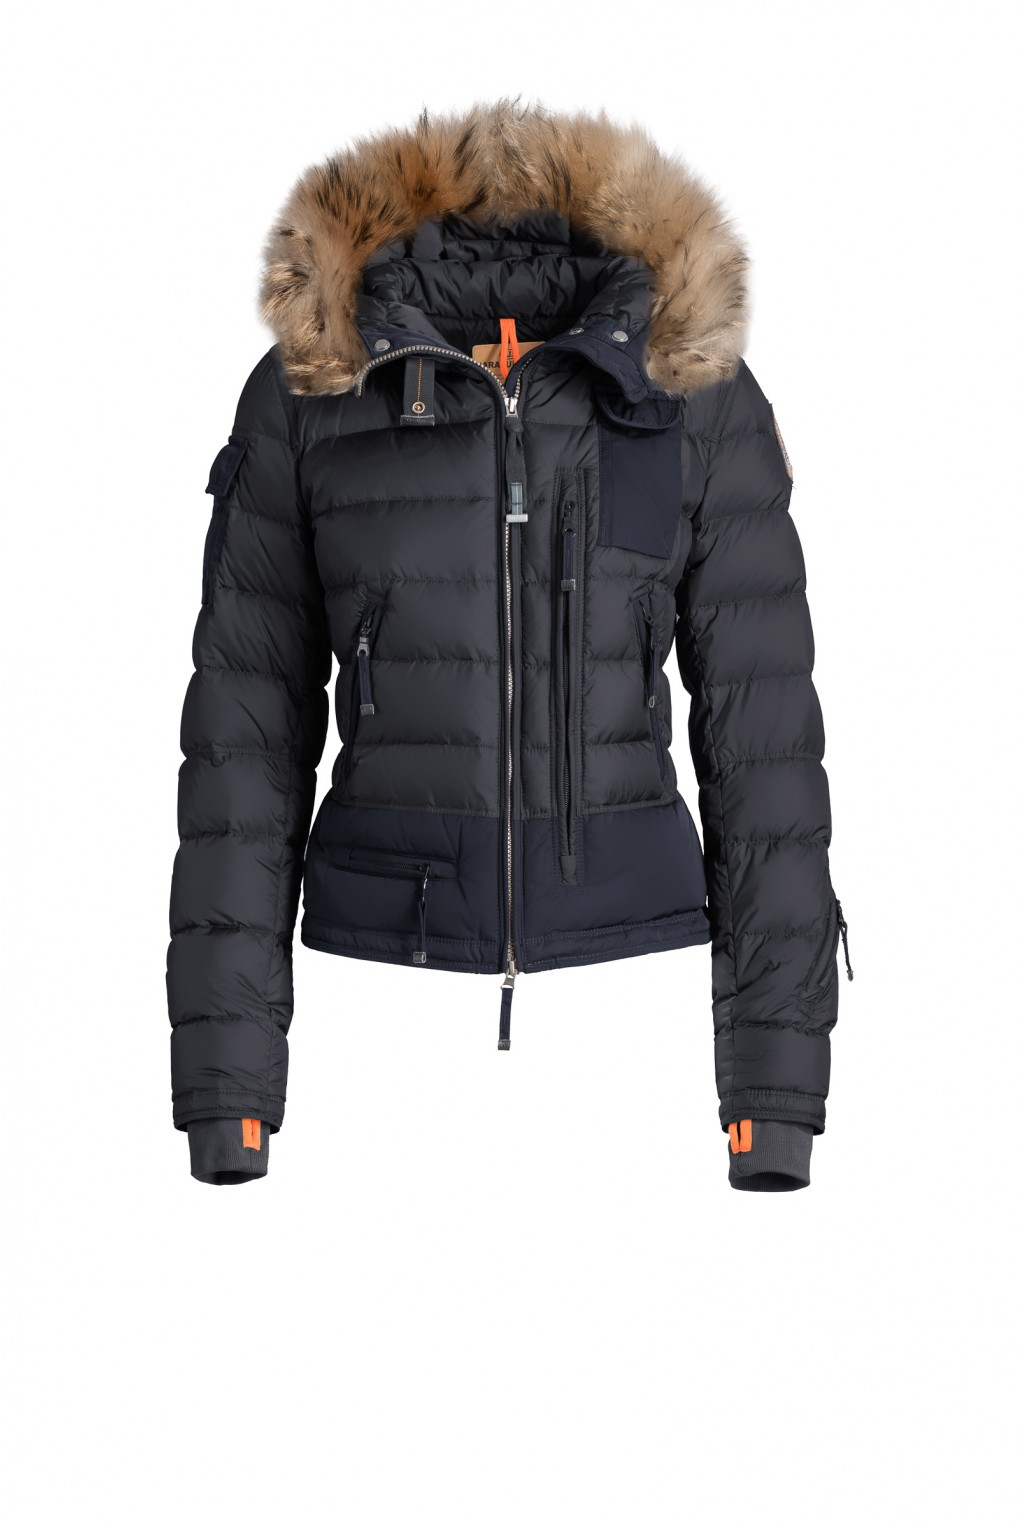 Parajumpers Winterjassen Dames